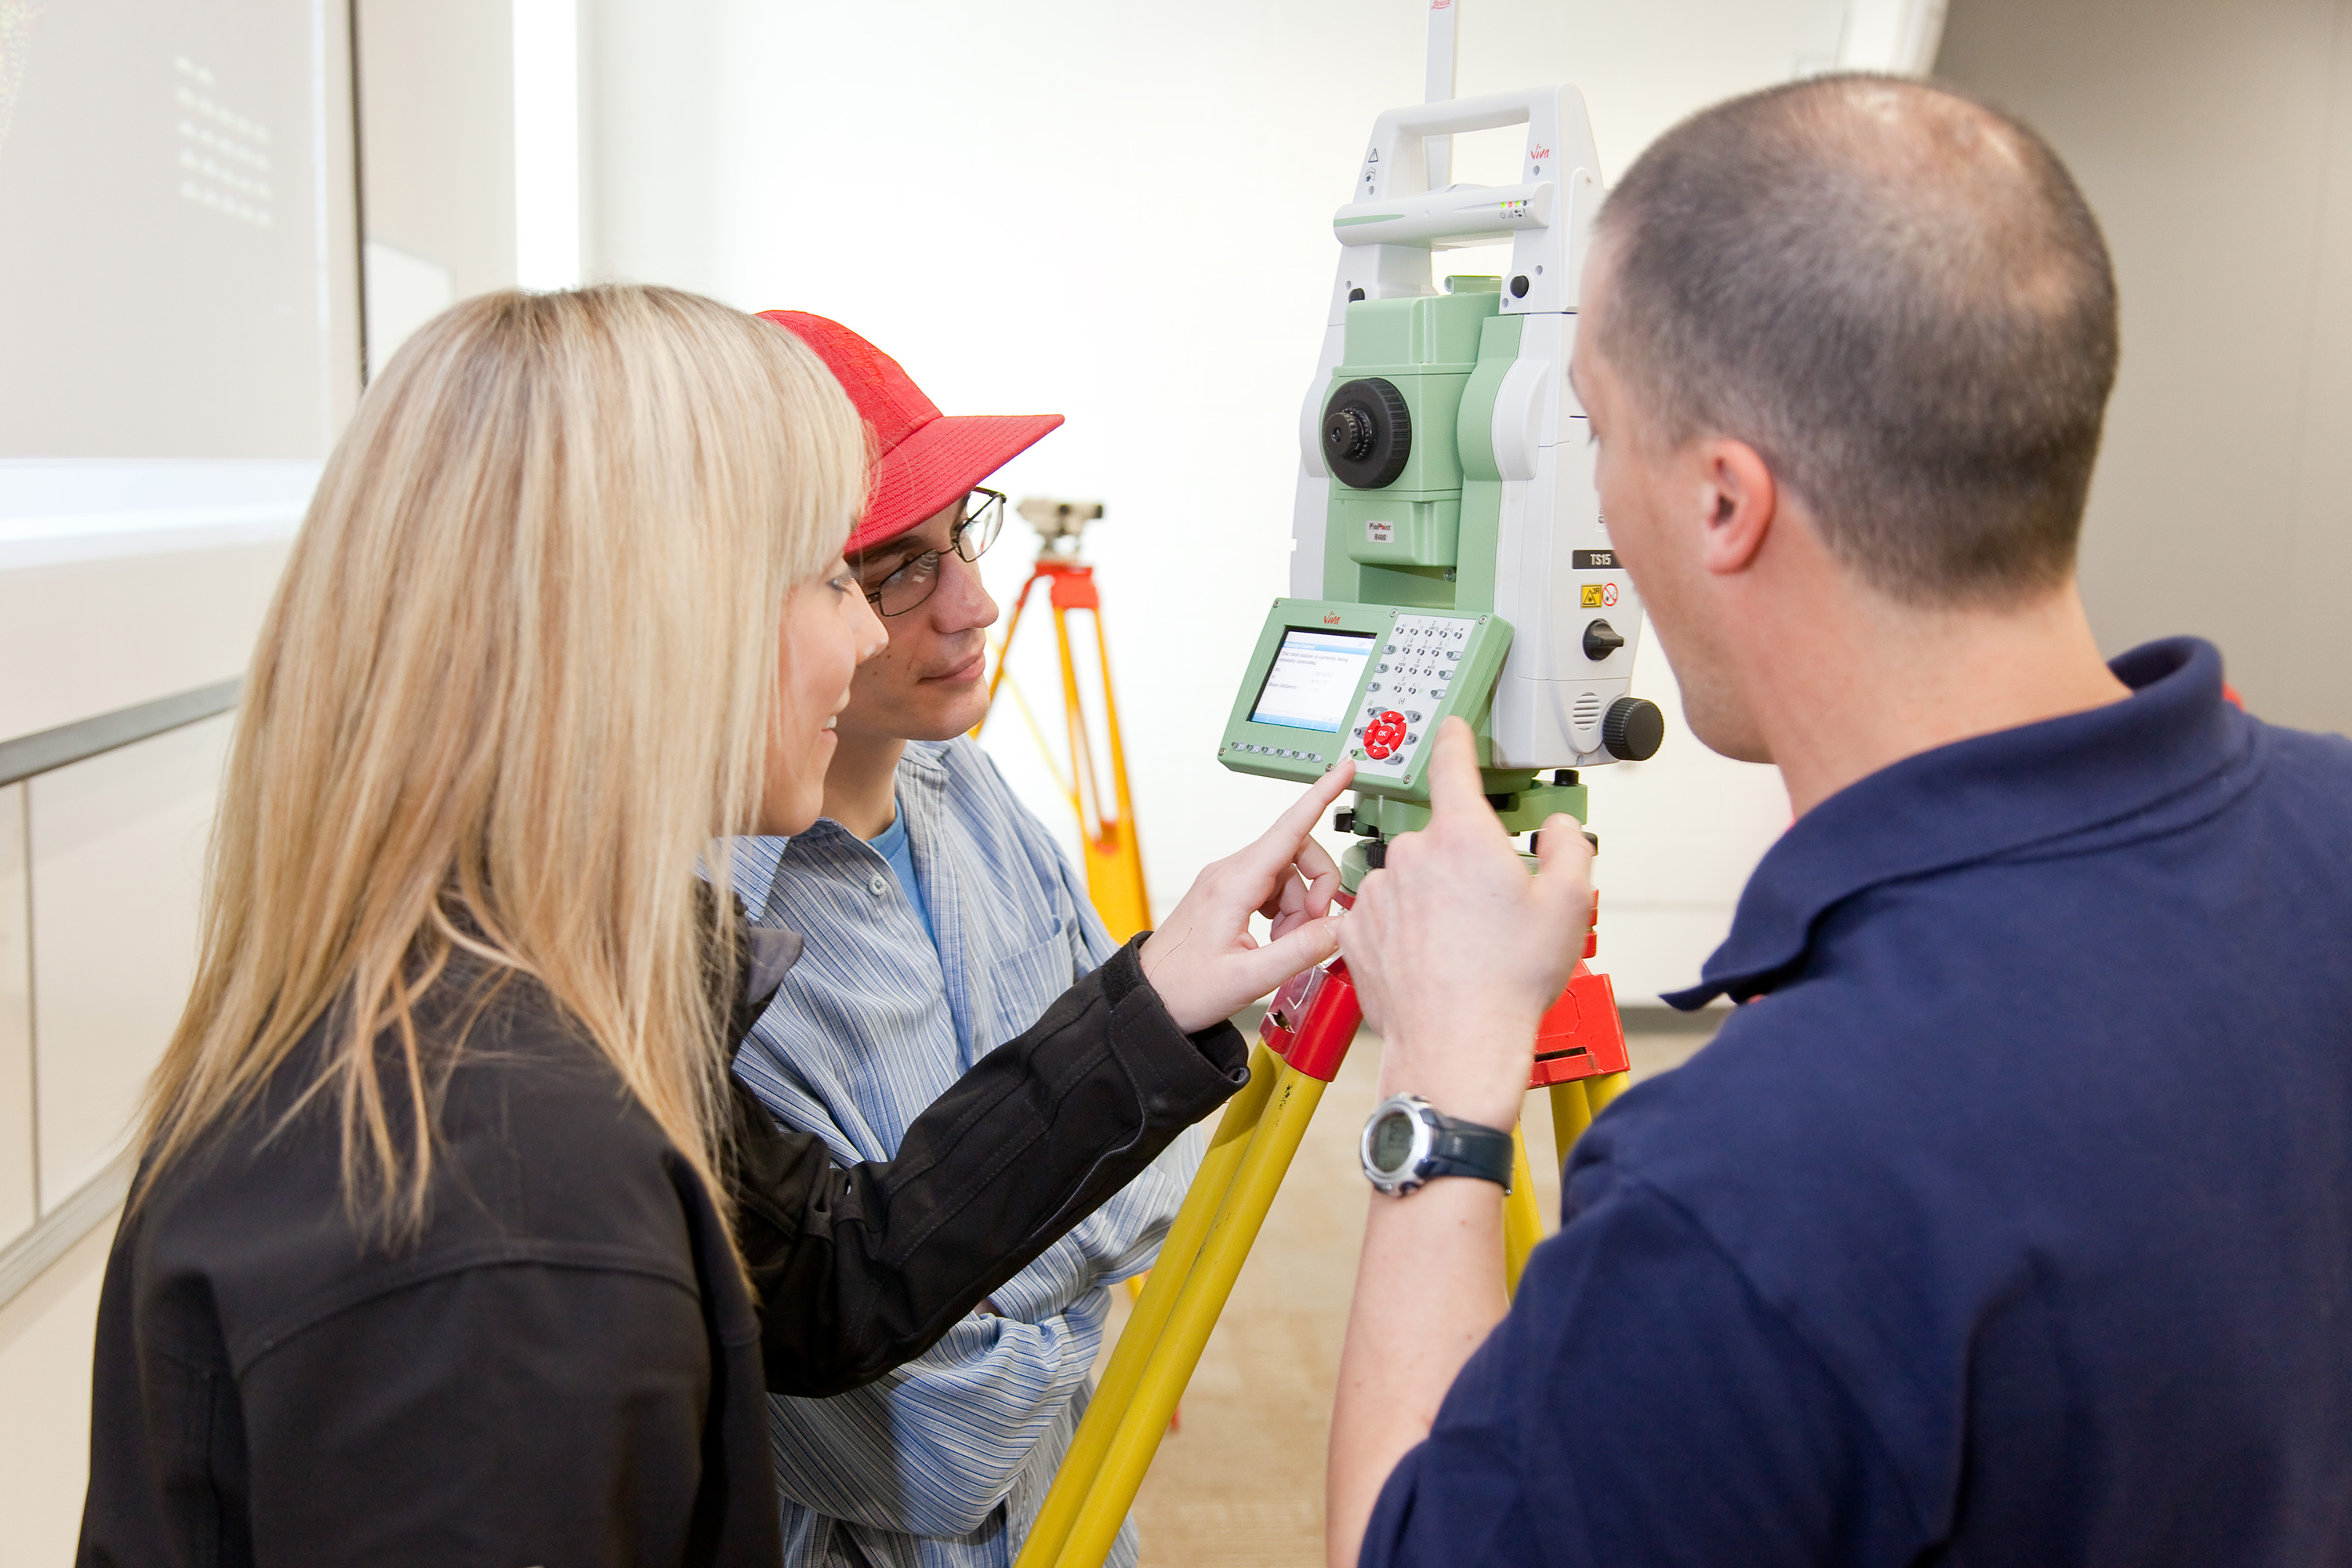 People inspecting a robotic arm